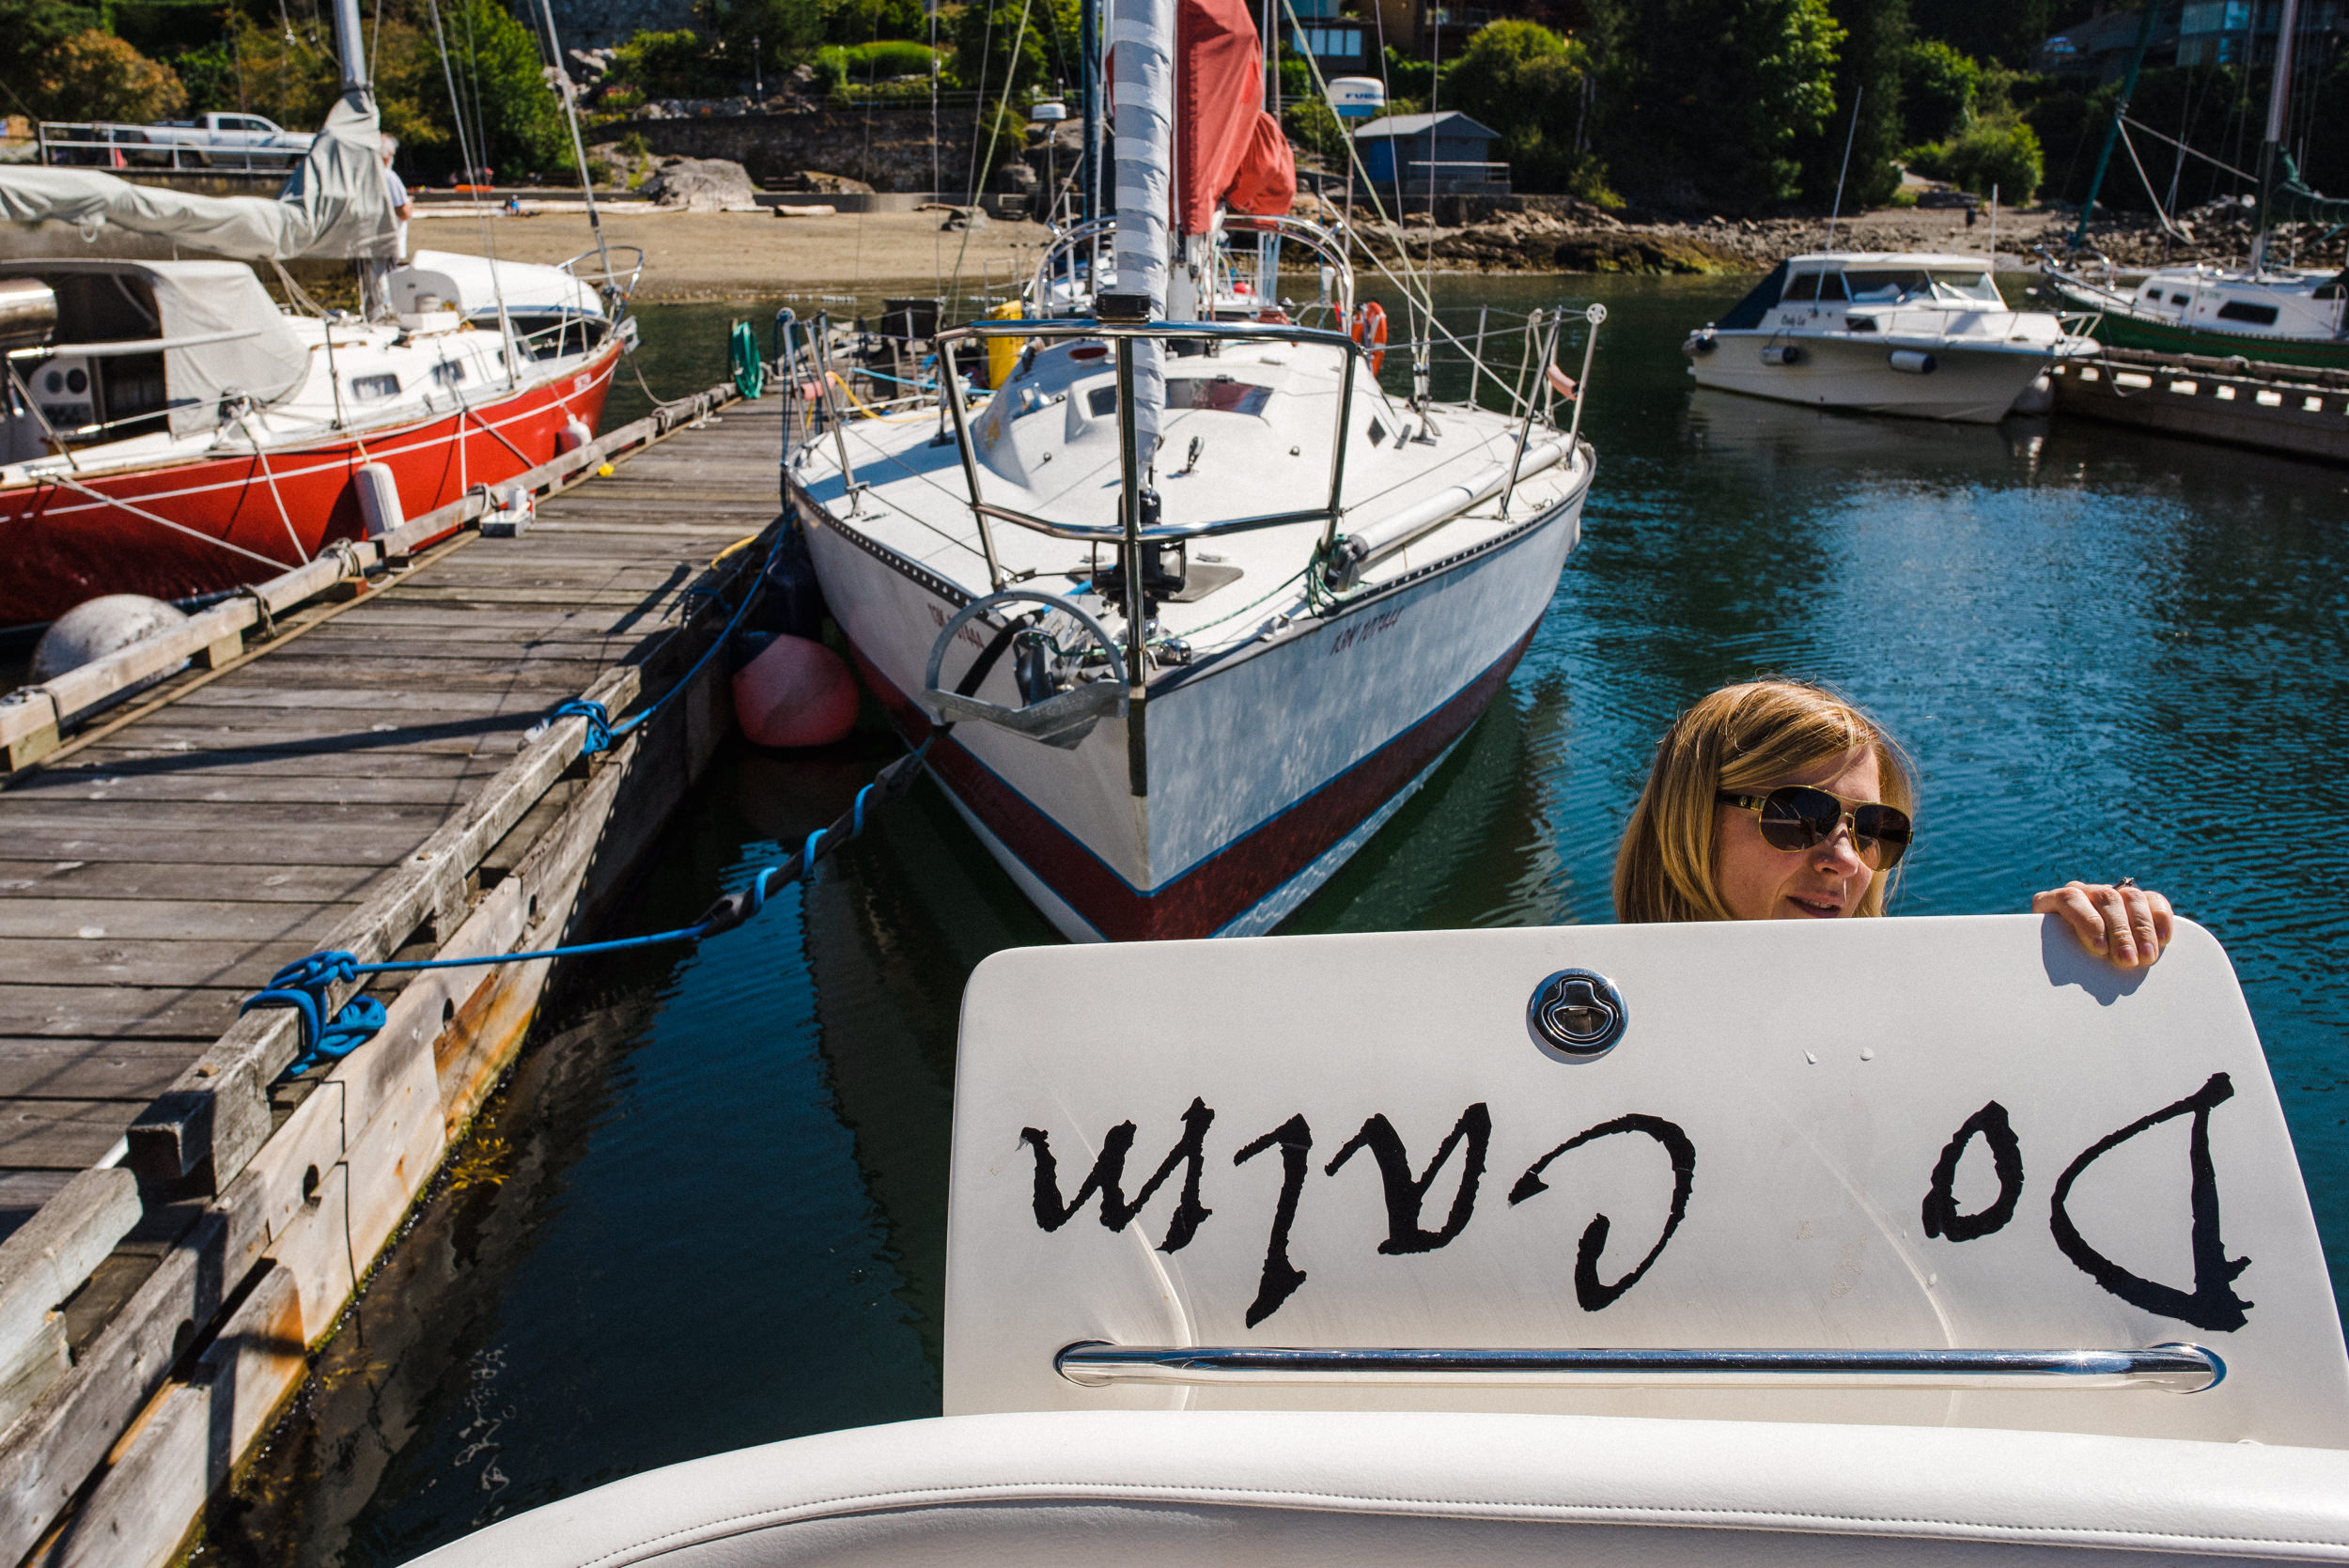 woman preparing boat for launch at dock